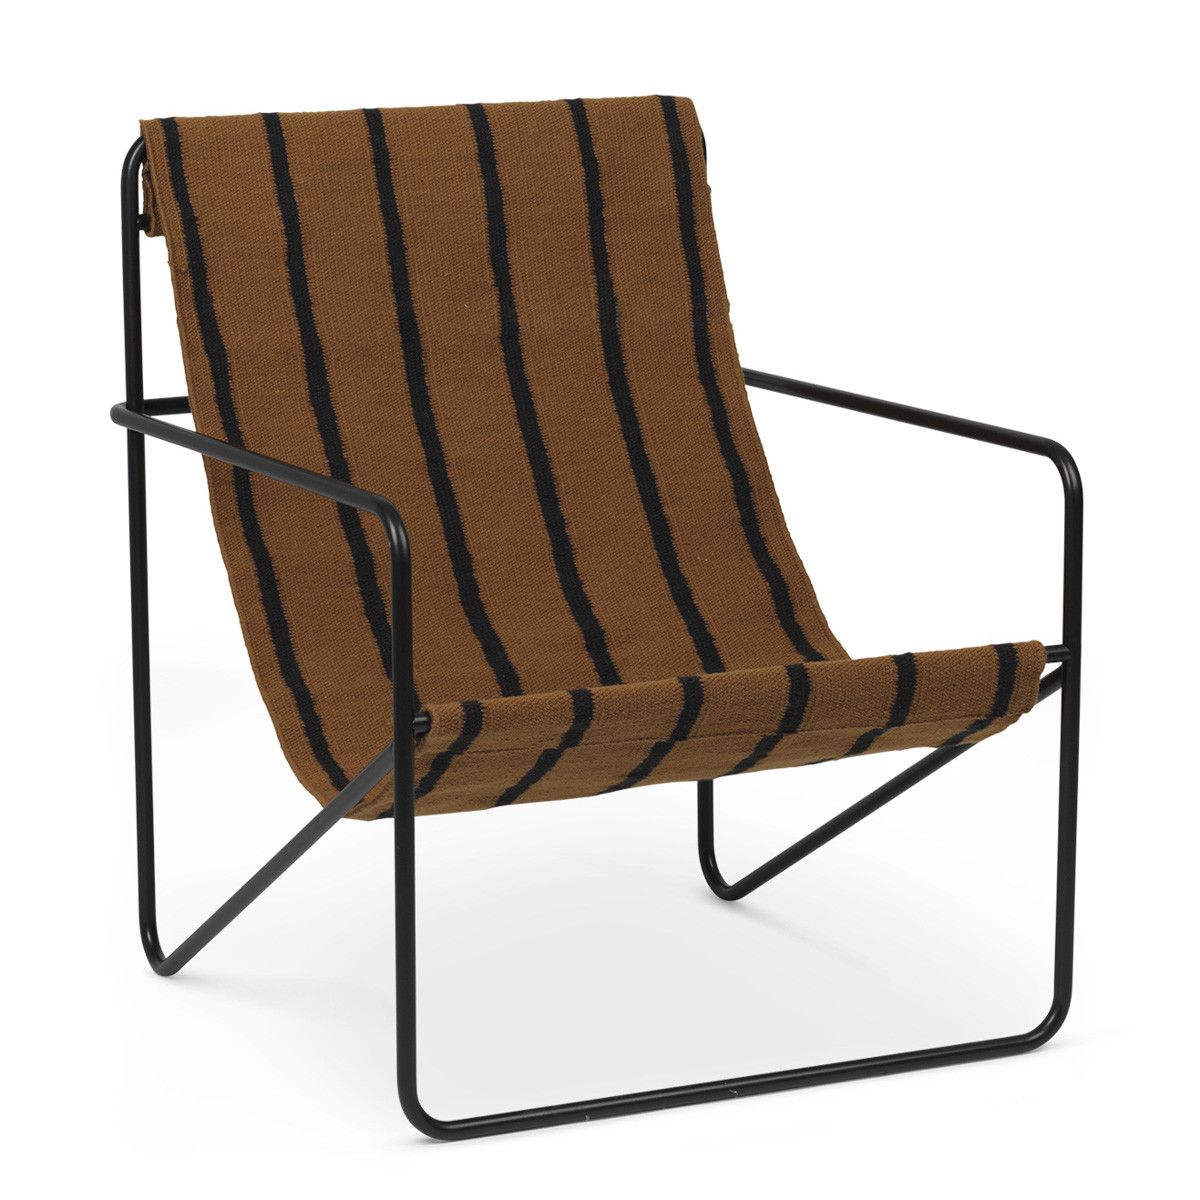 Ferm Living Desert Lounge Chair - Stripes